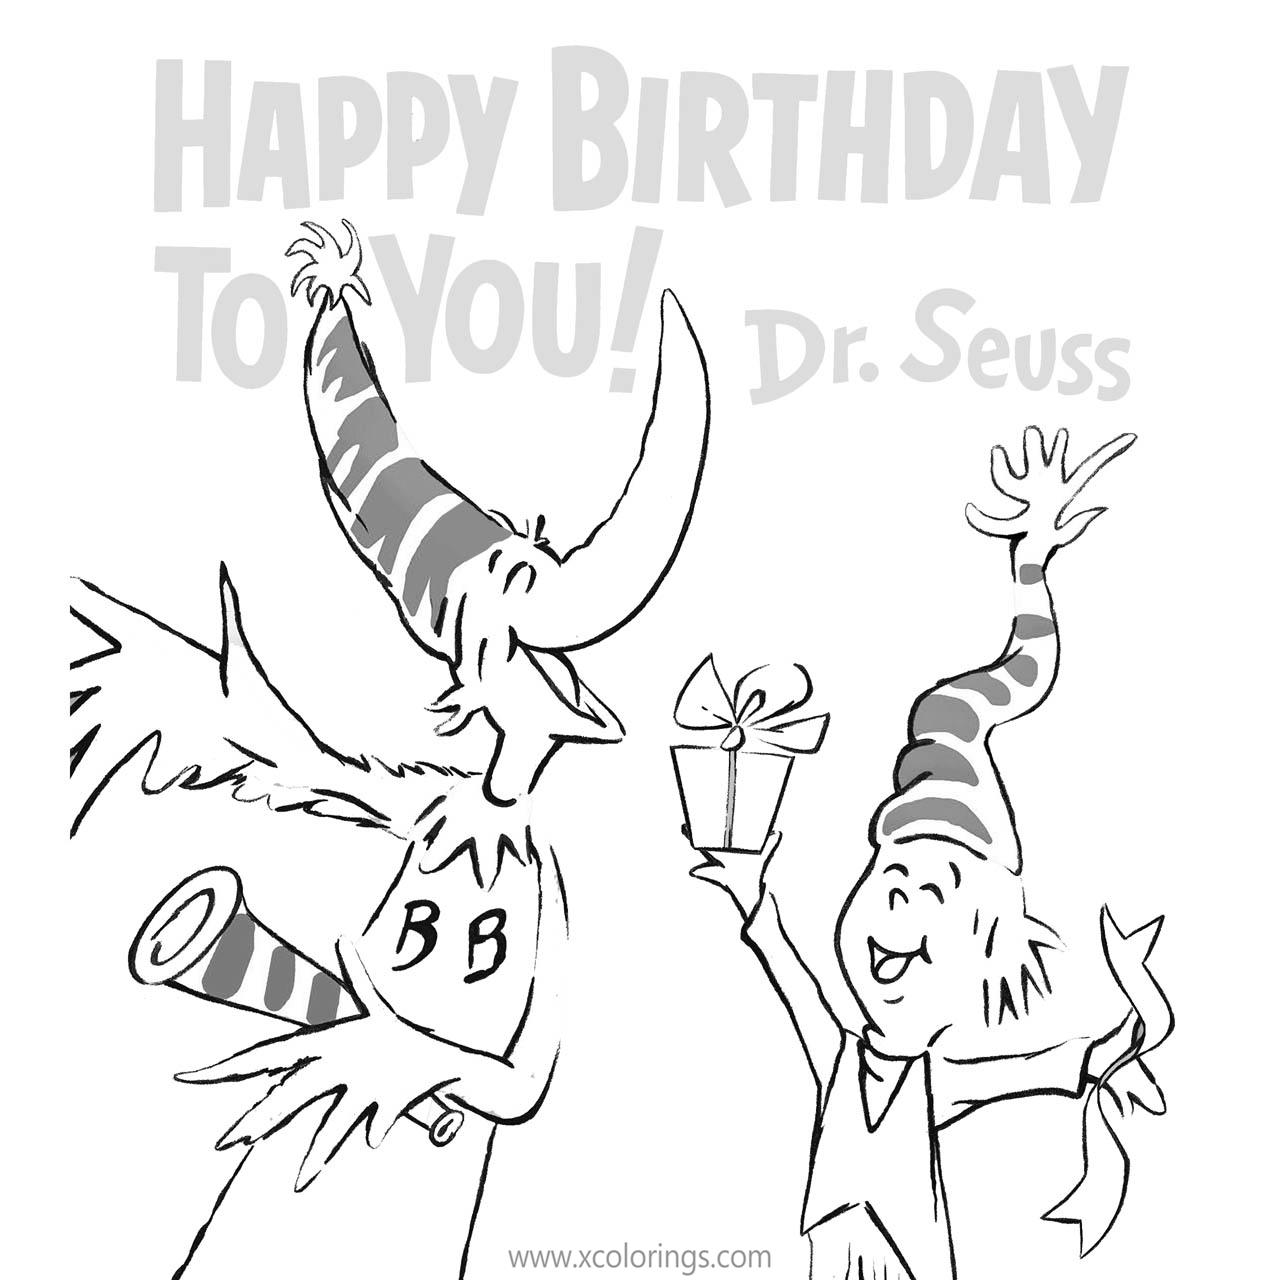 Free Happy Birthday To You Dr Seuss Coloring Pages printable